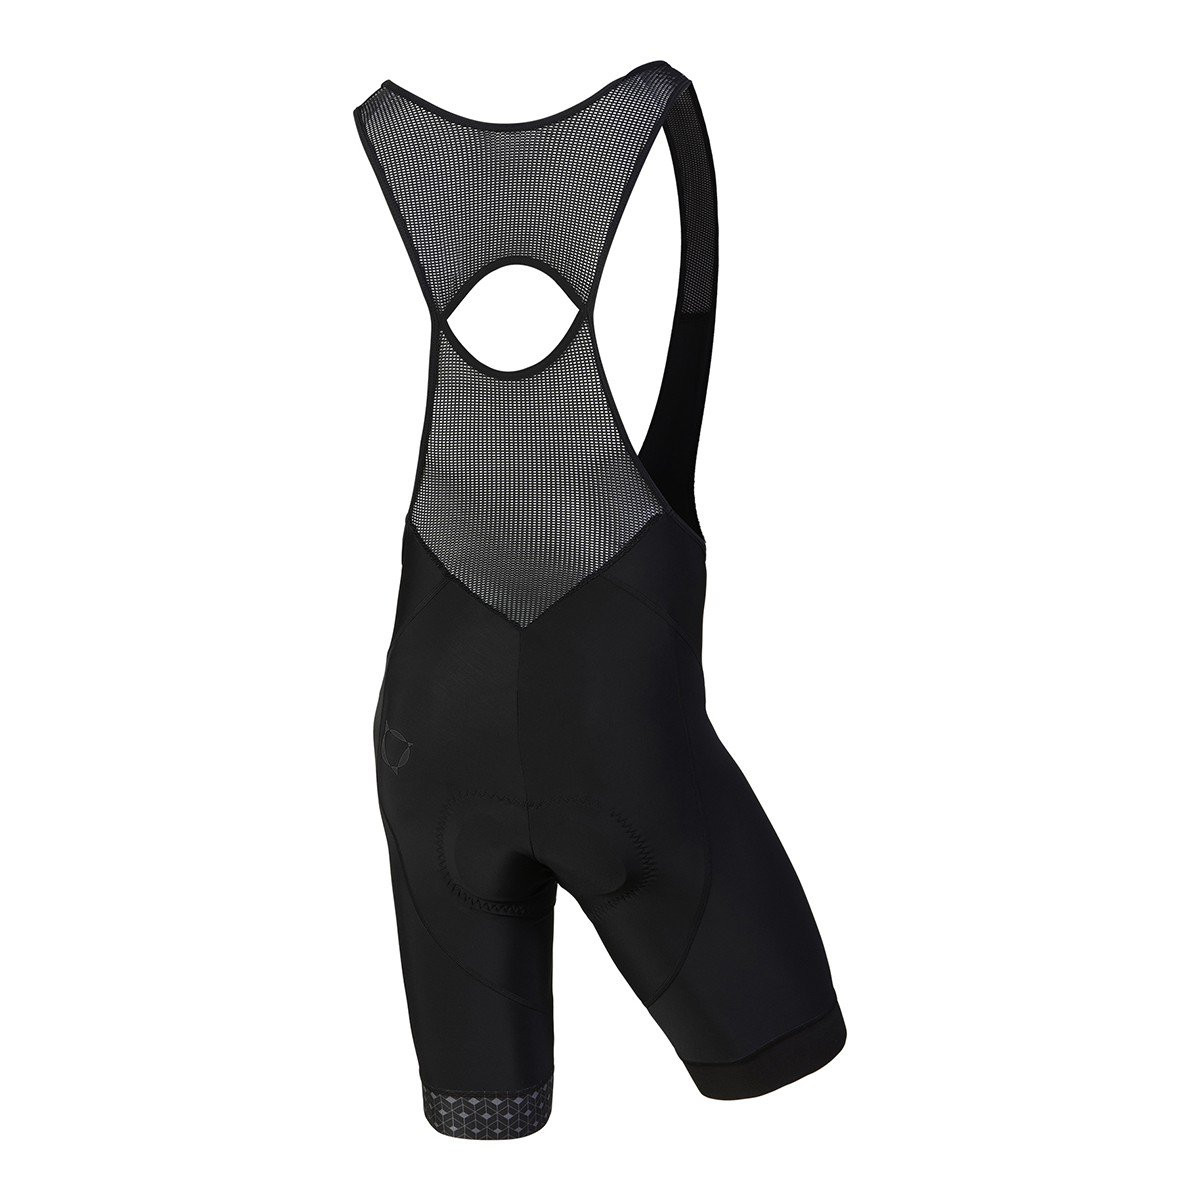 Nalini Scatto Black Bib Shorts